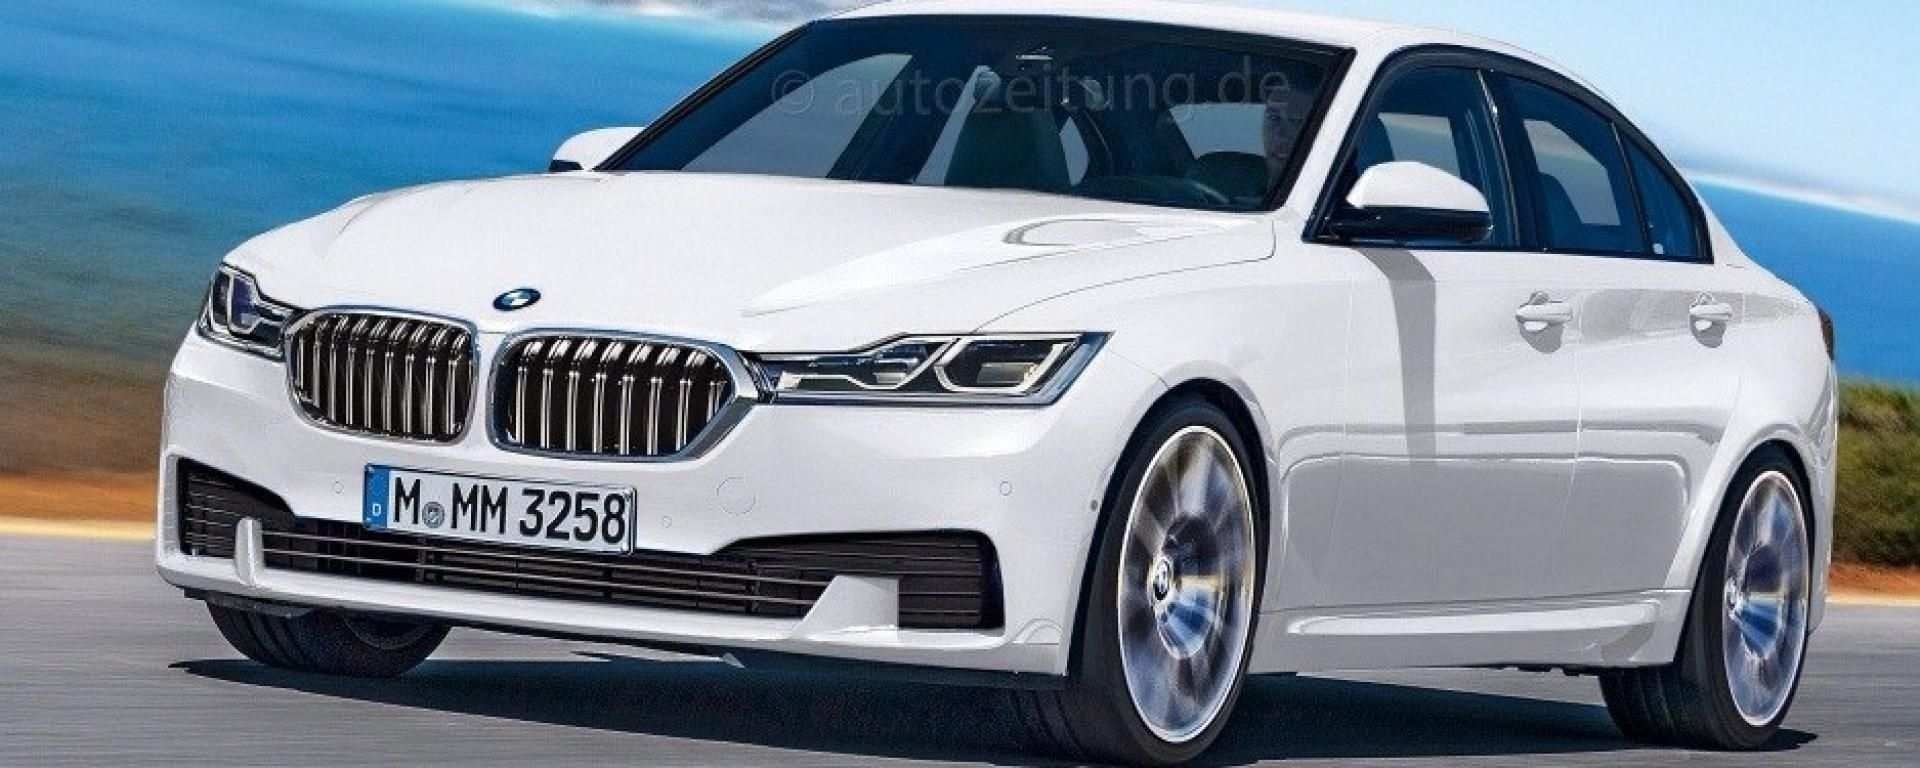 44 Best Review Bmw Serie 3 2019 Quando Esce Release Specs And Review Ratings with Bmw Serie 3 2019 Quando Esce Release Specs And Review